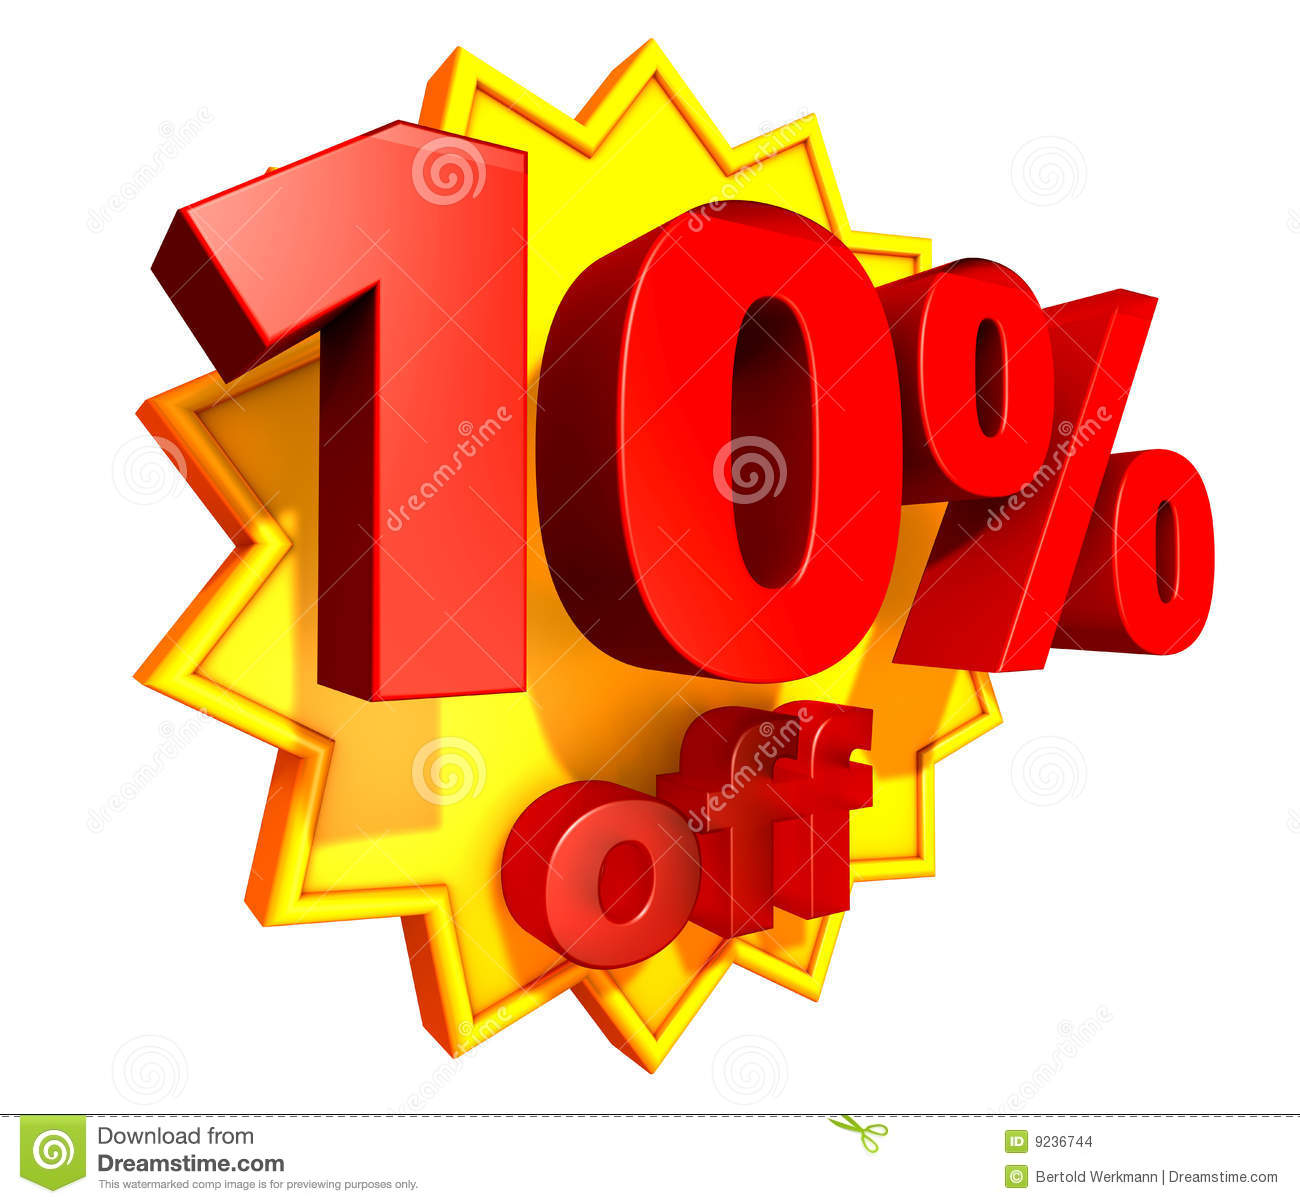 Sign For 10 Per Cent Off In Red Ciphers At A Yellow Star On A White